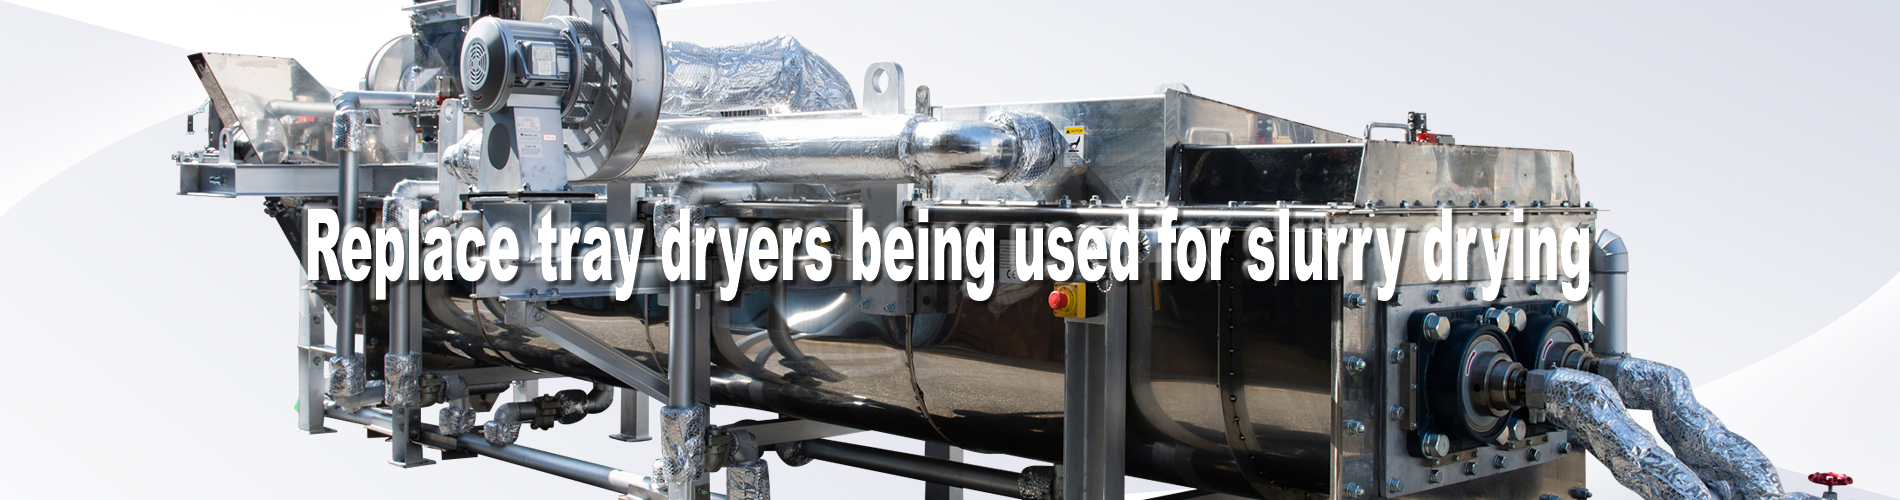 Replace tray dryers being used for slurry drying